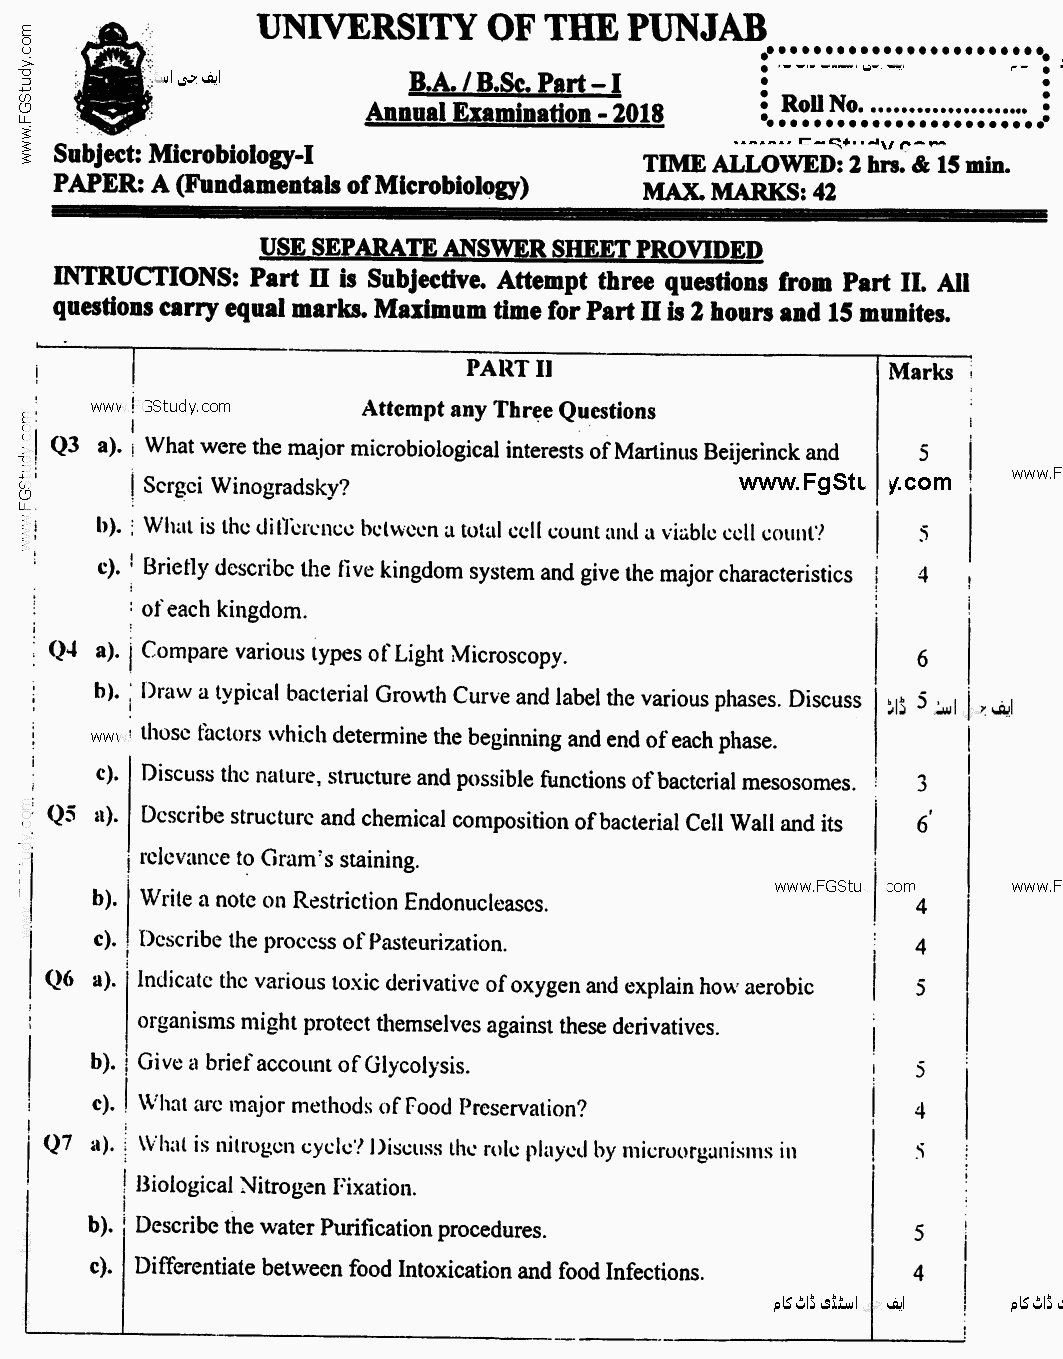 Microbiology A Fundamentals Of Microbiology BA Part 1 Past Papers 2018